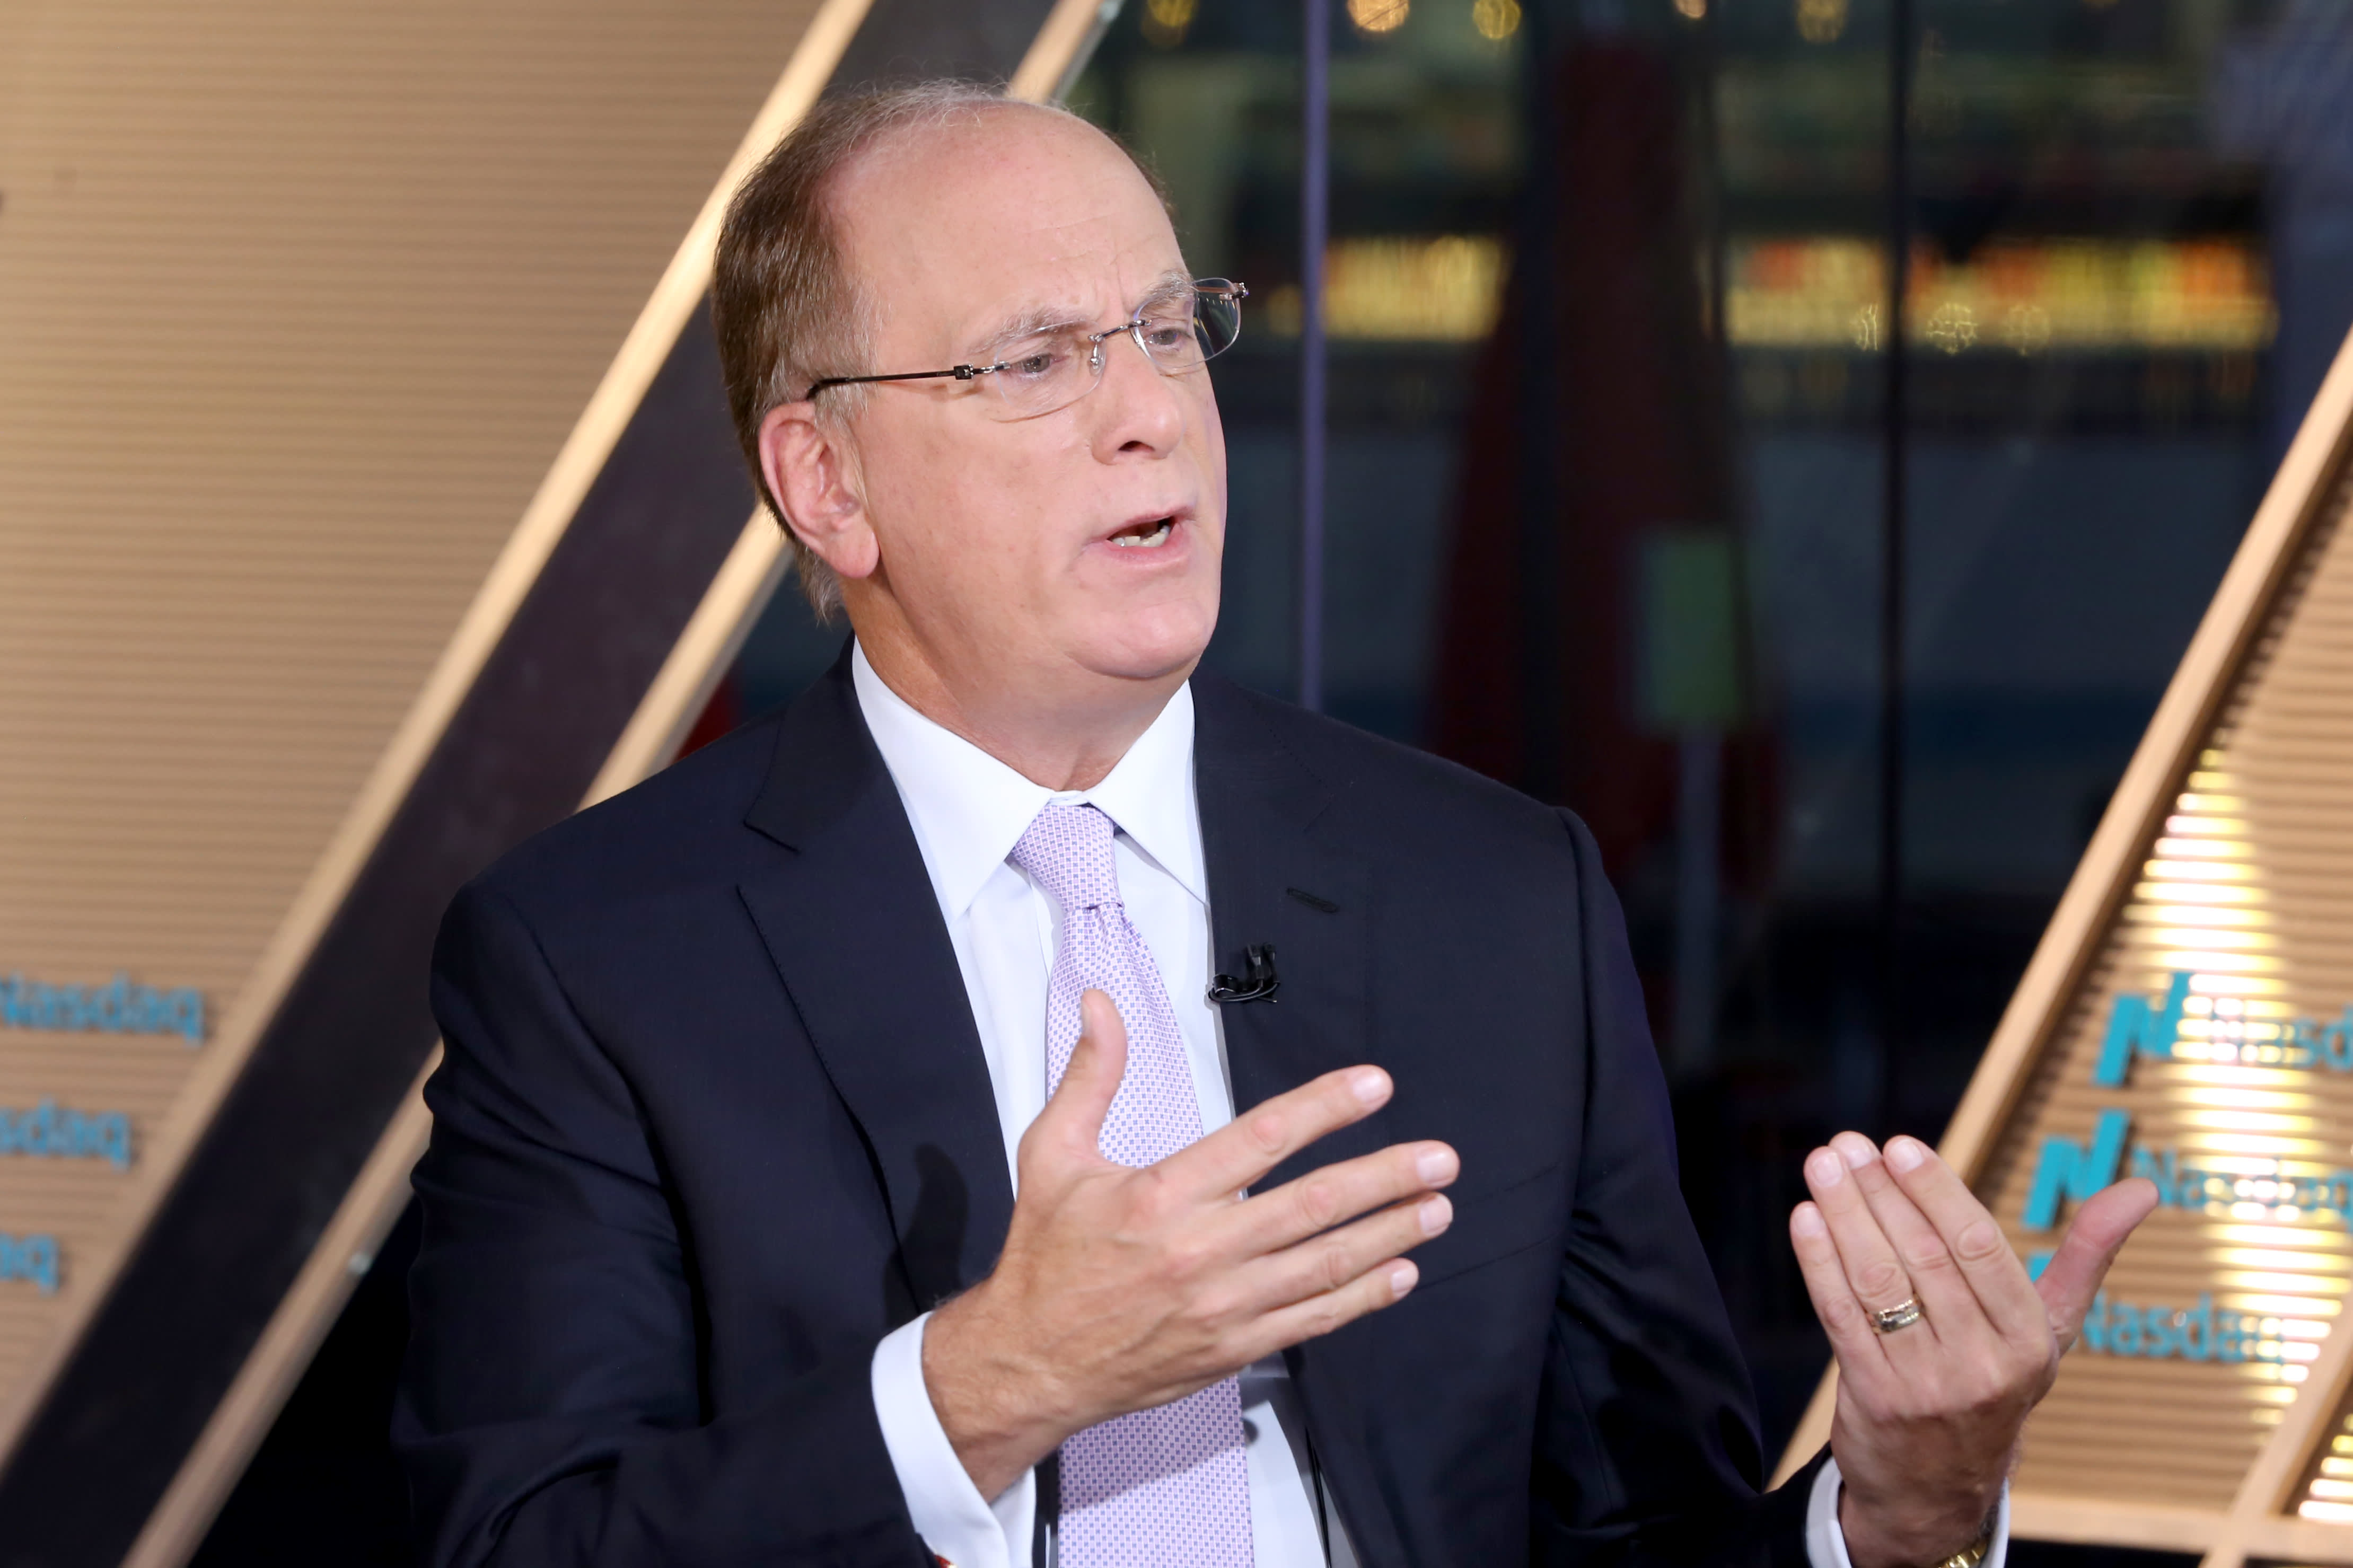 Larry Fink isn't concerned about Iran sanctions' impact on the price of oil